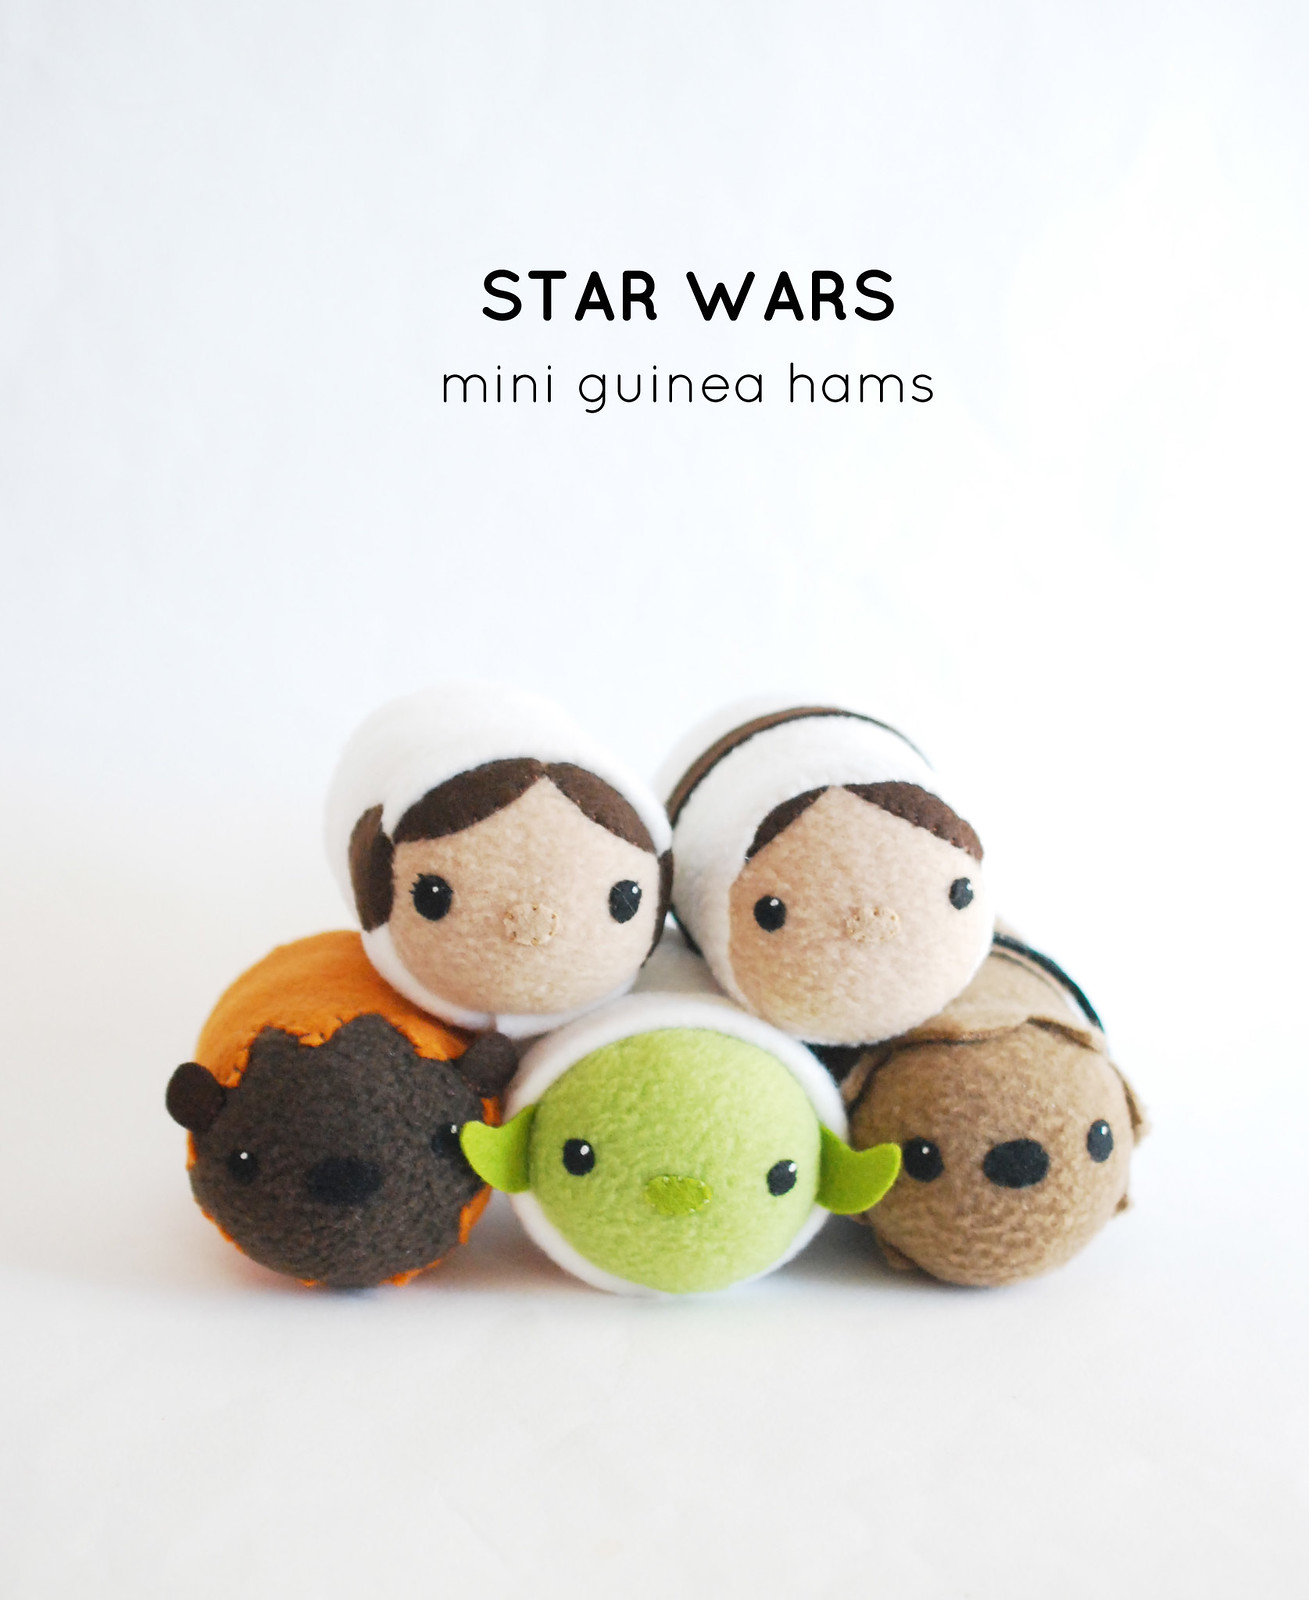 Star Wars Mini Guinea Hams